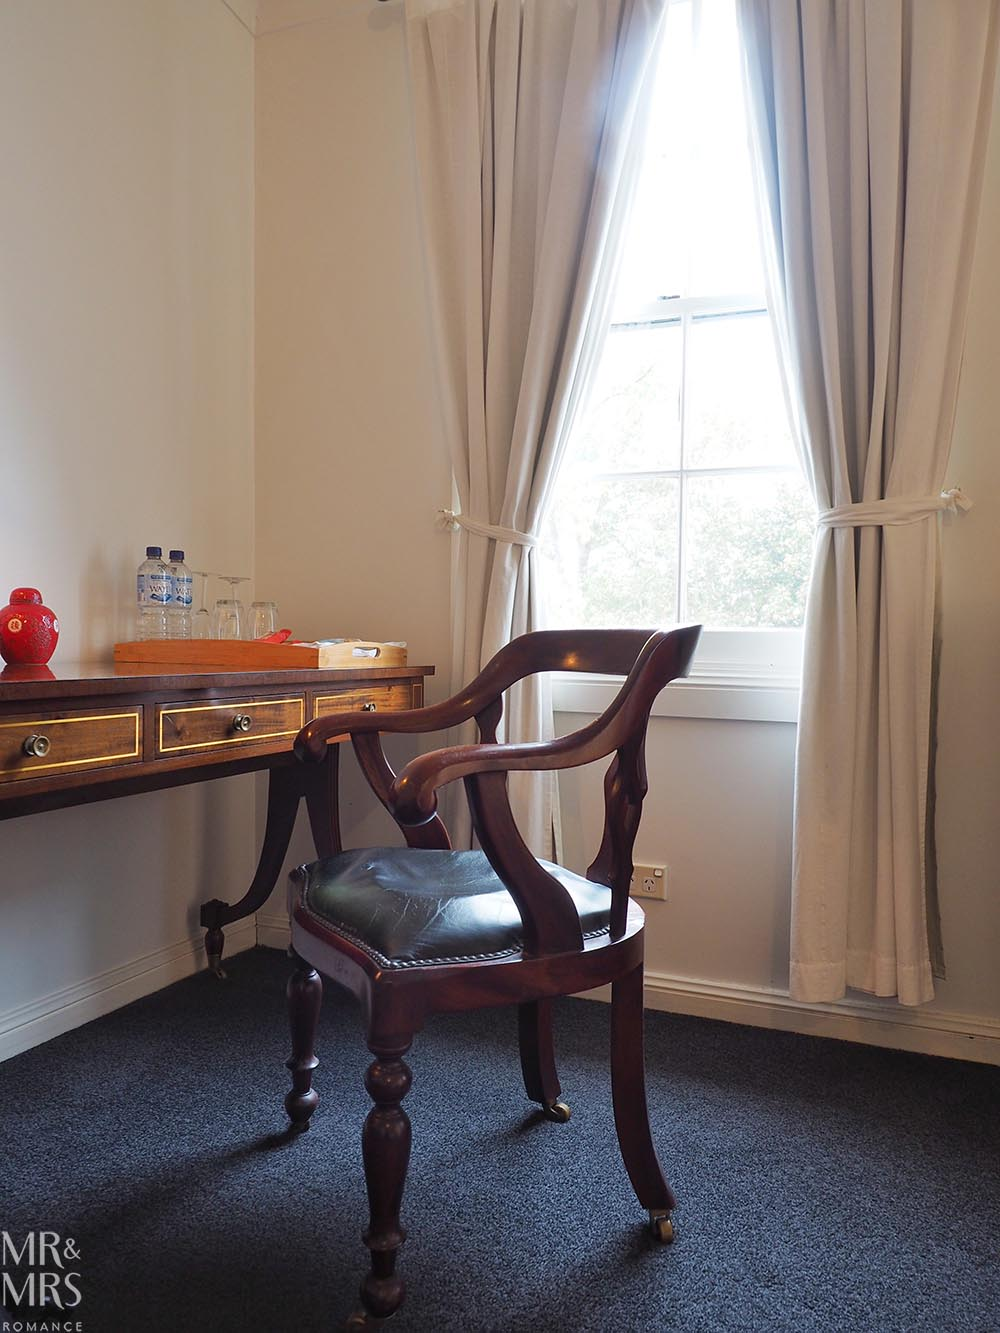 Where to stay in the Hunter Region, NSW - The Bronte Boutique Hotel, Morpeth - bedroom desk